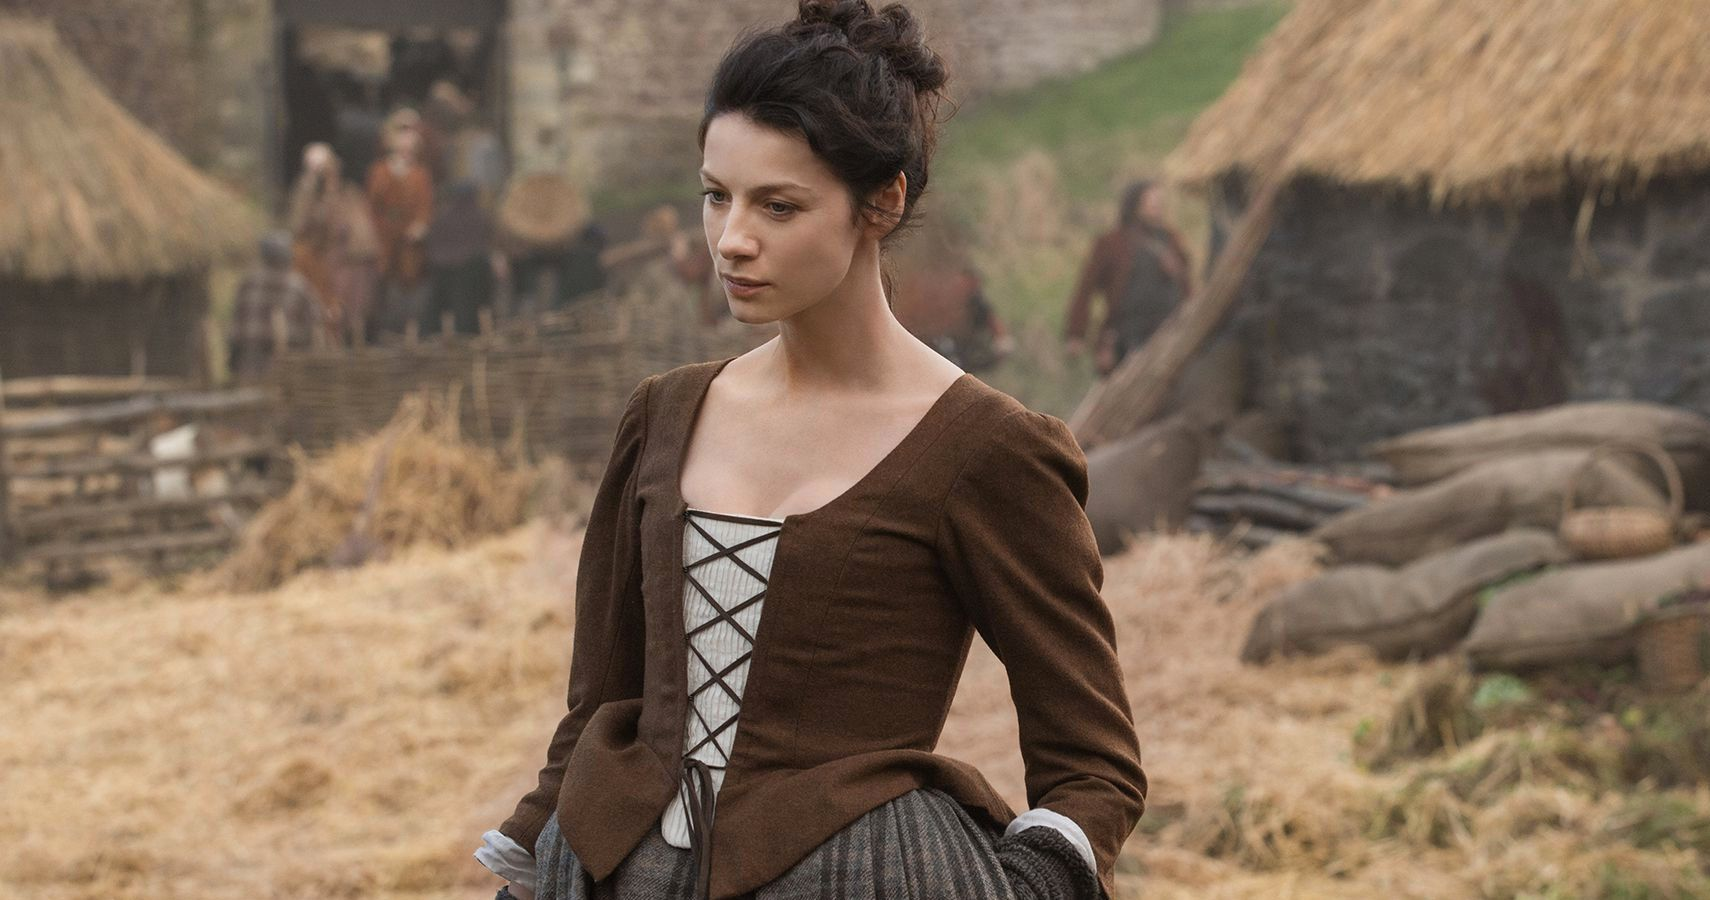 Outlander: 10 Hidden Facts About Claire Only True Fans Noticed